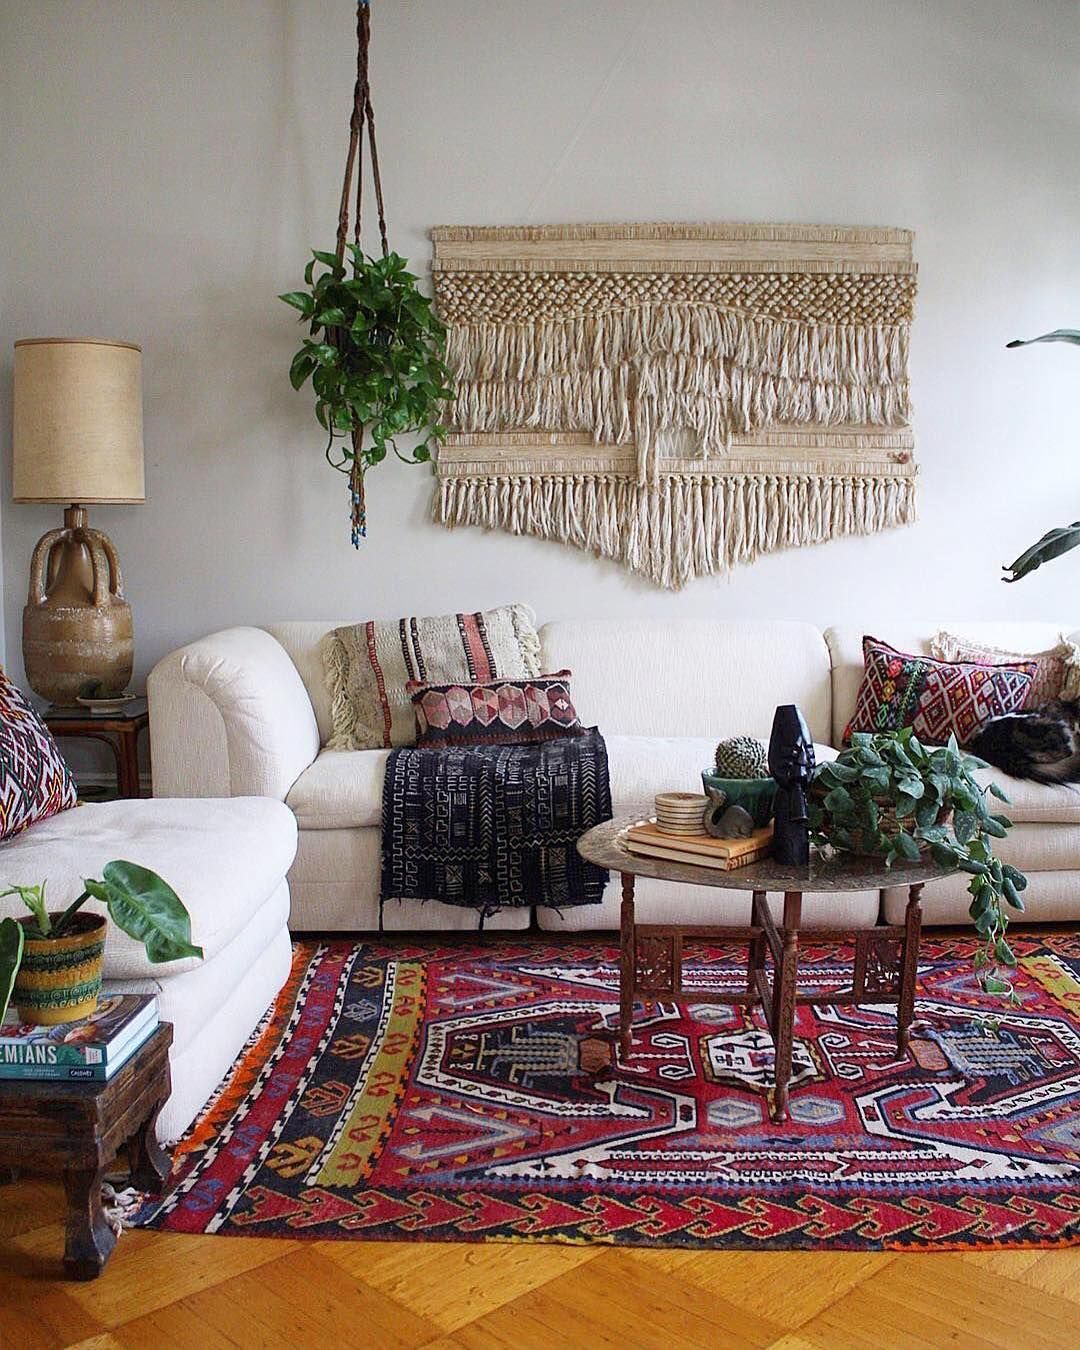 21 Incredible Home Theater Design Ideas Decor Pictures: Amazing Bohemian Lounge Room Using Kilim! #kilim